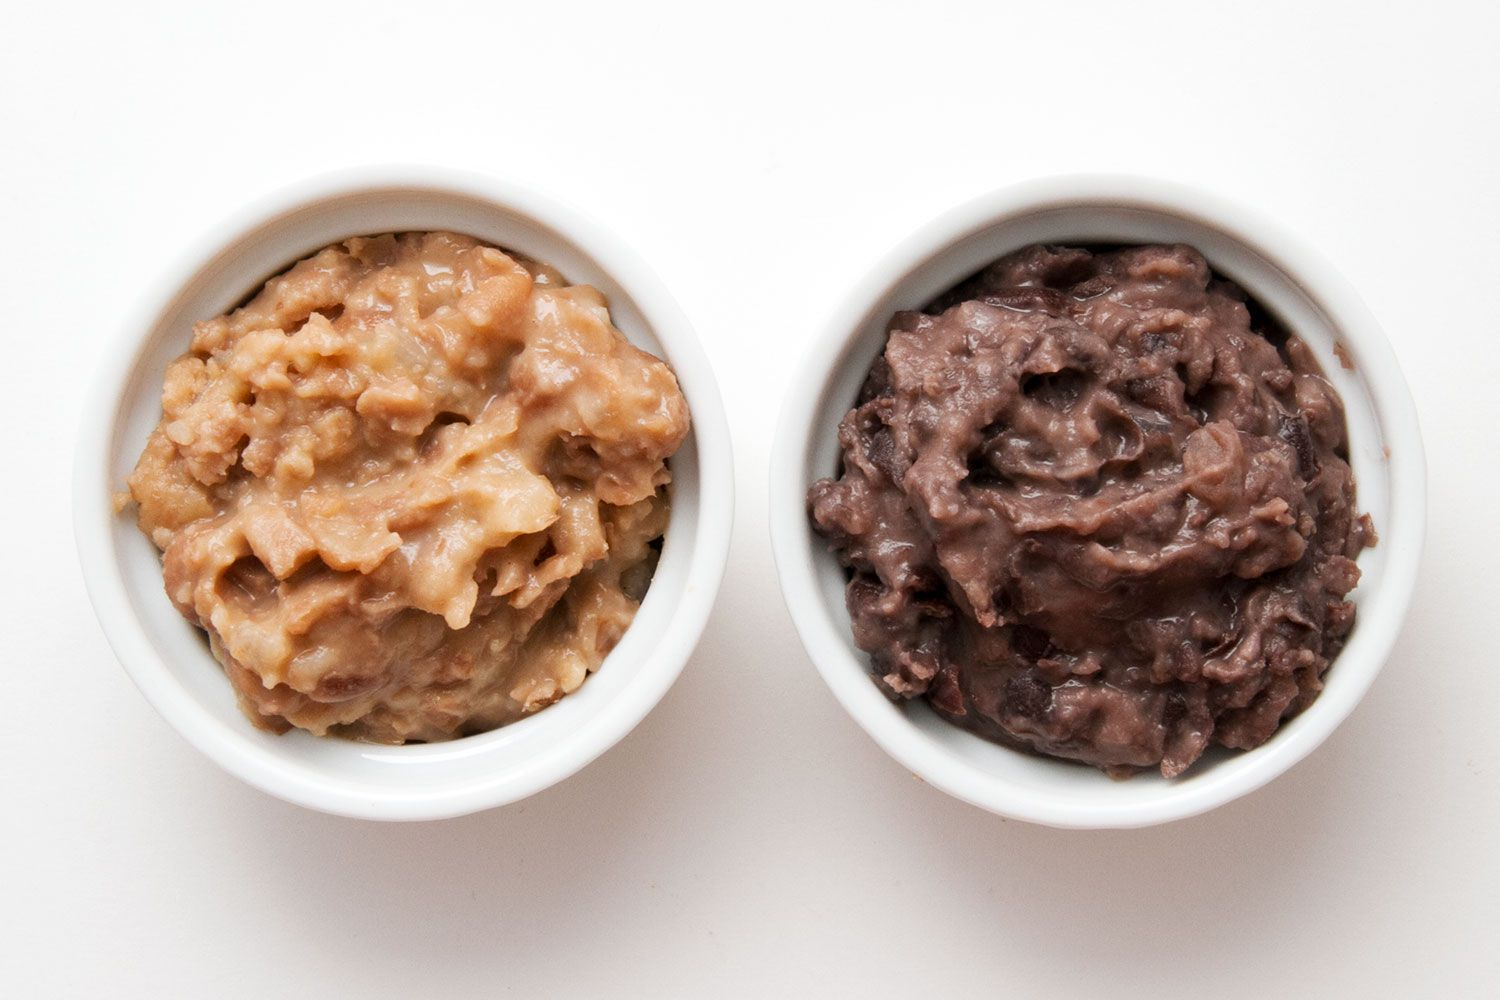 Comparing bowls of refried pinto and black beans